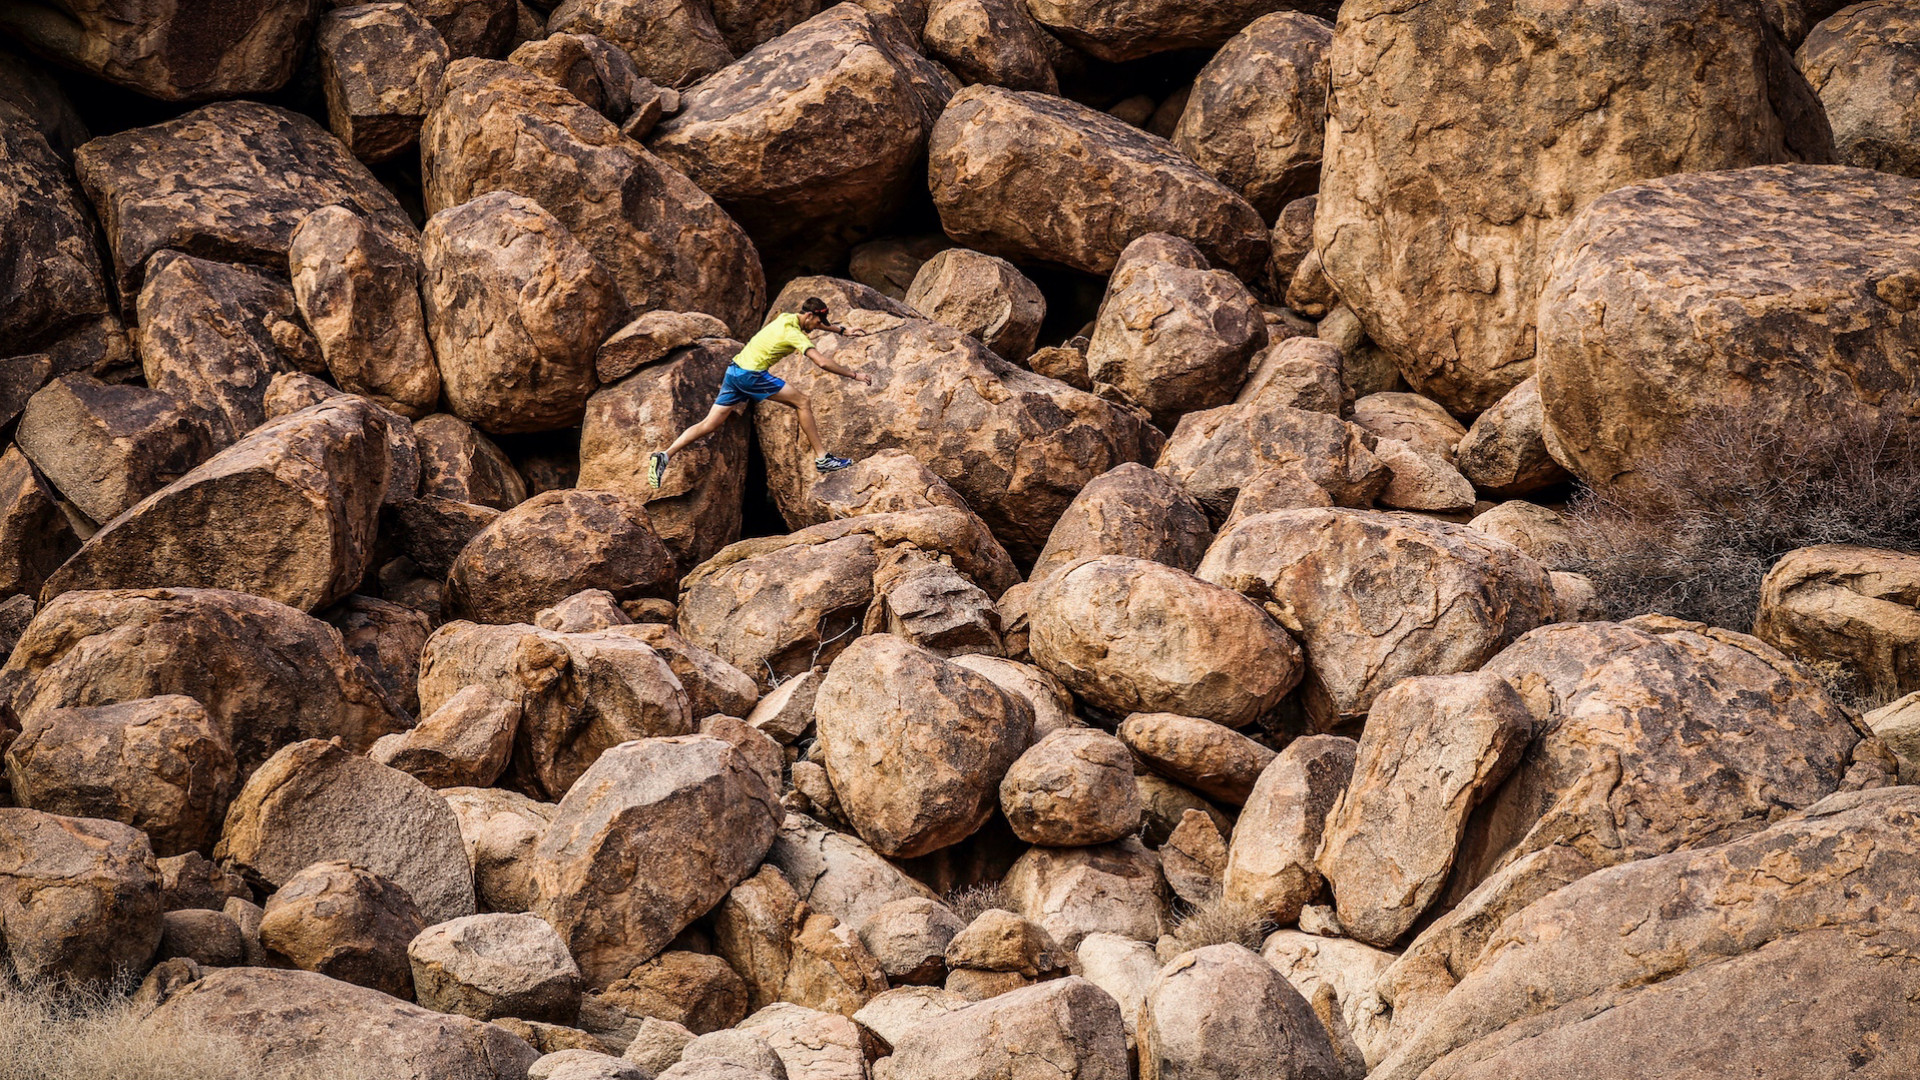 Boulder hopping at Richtersveld Wildrun